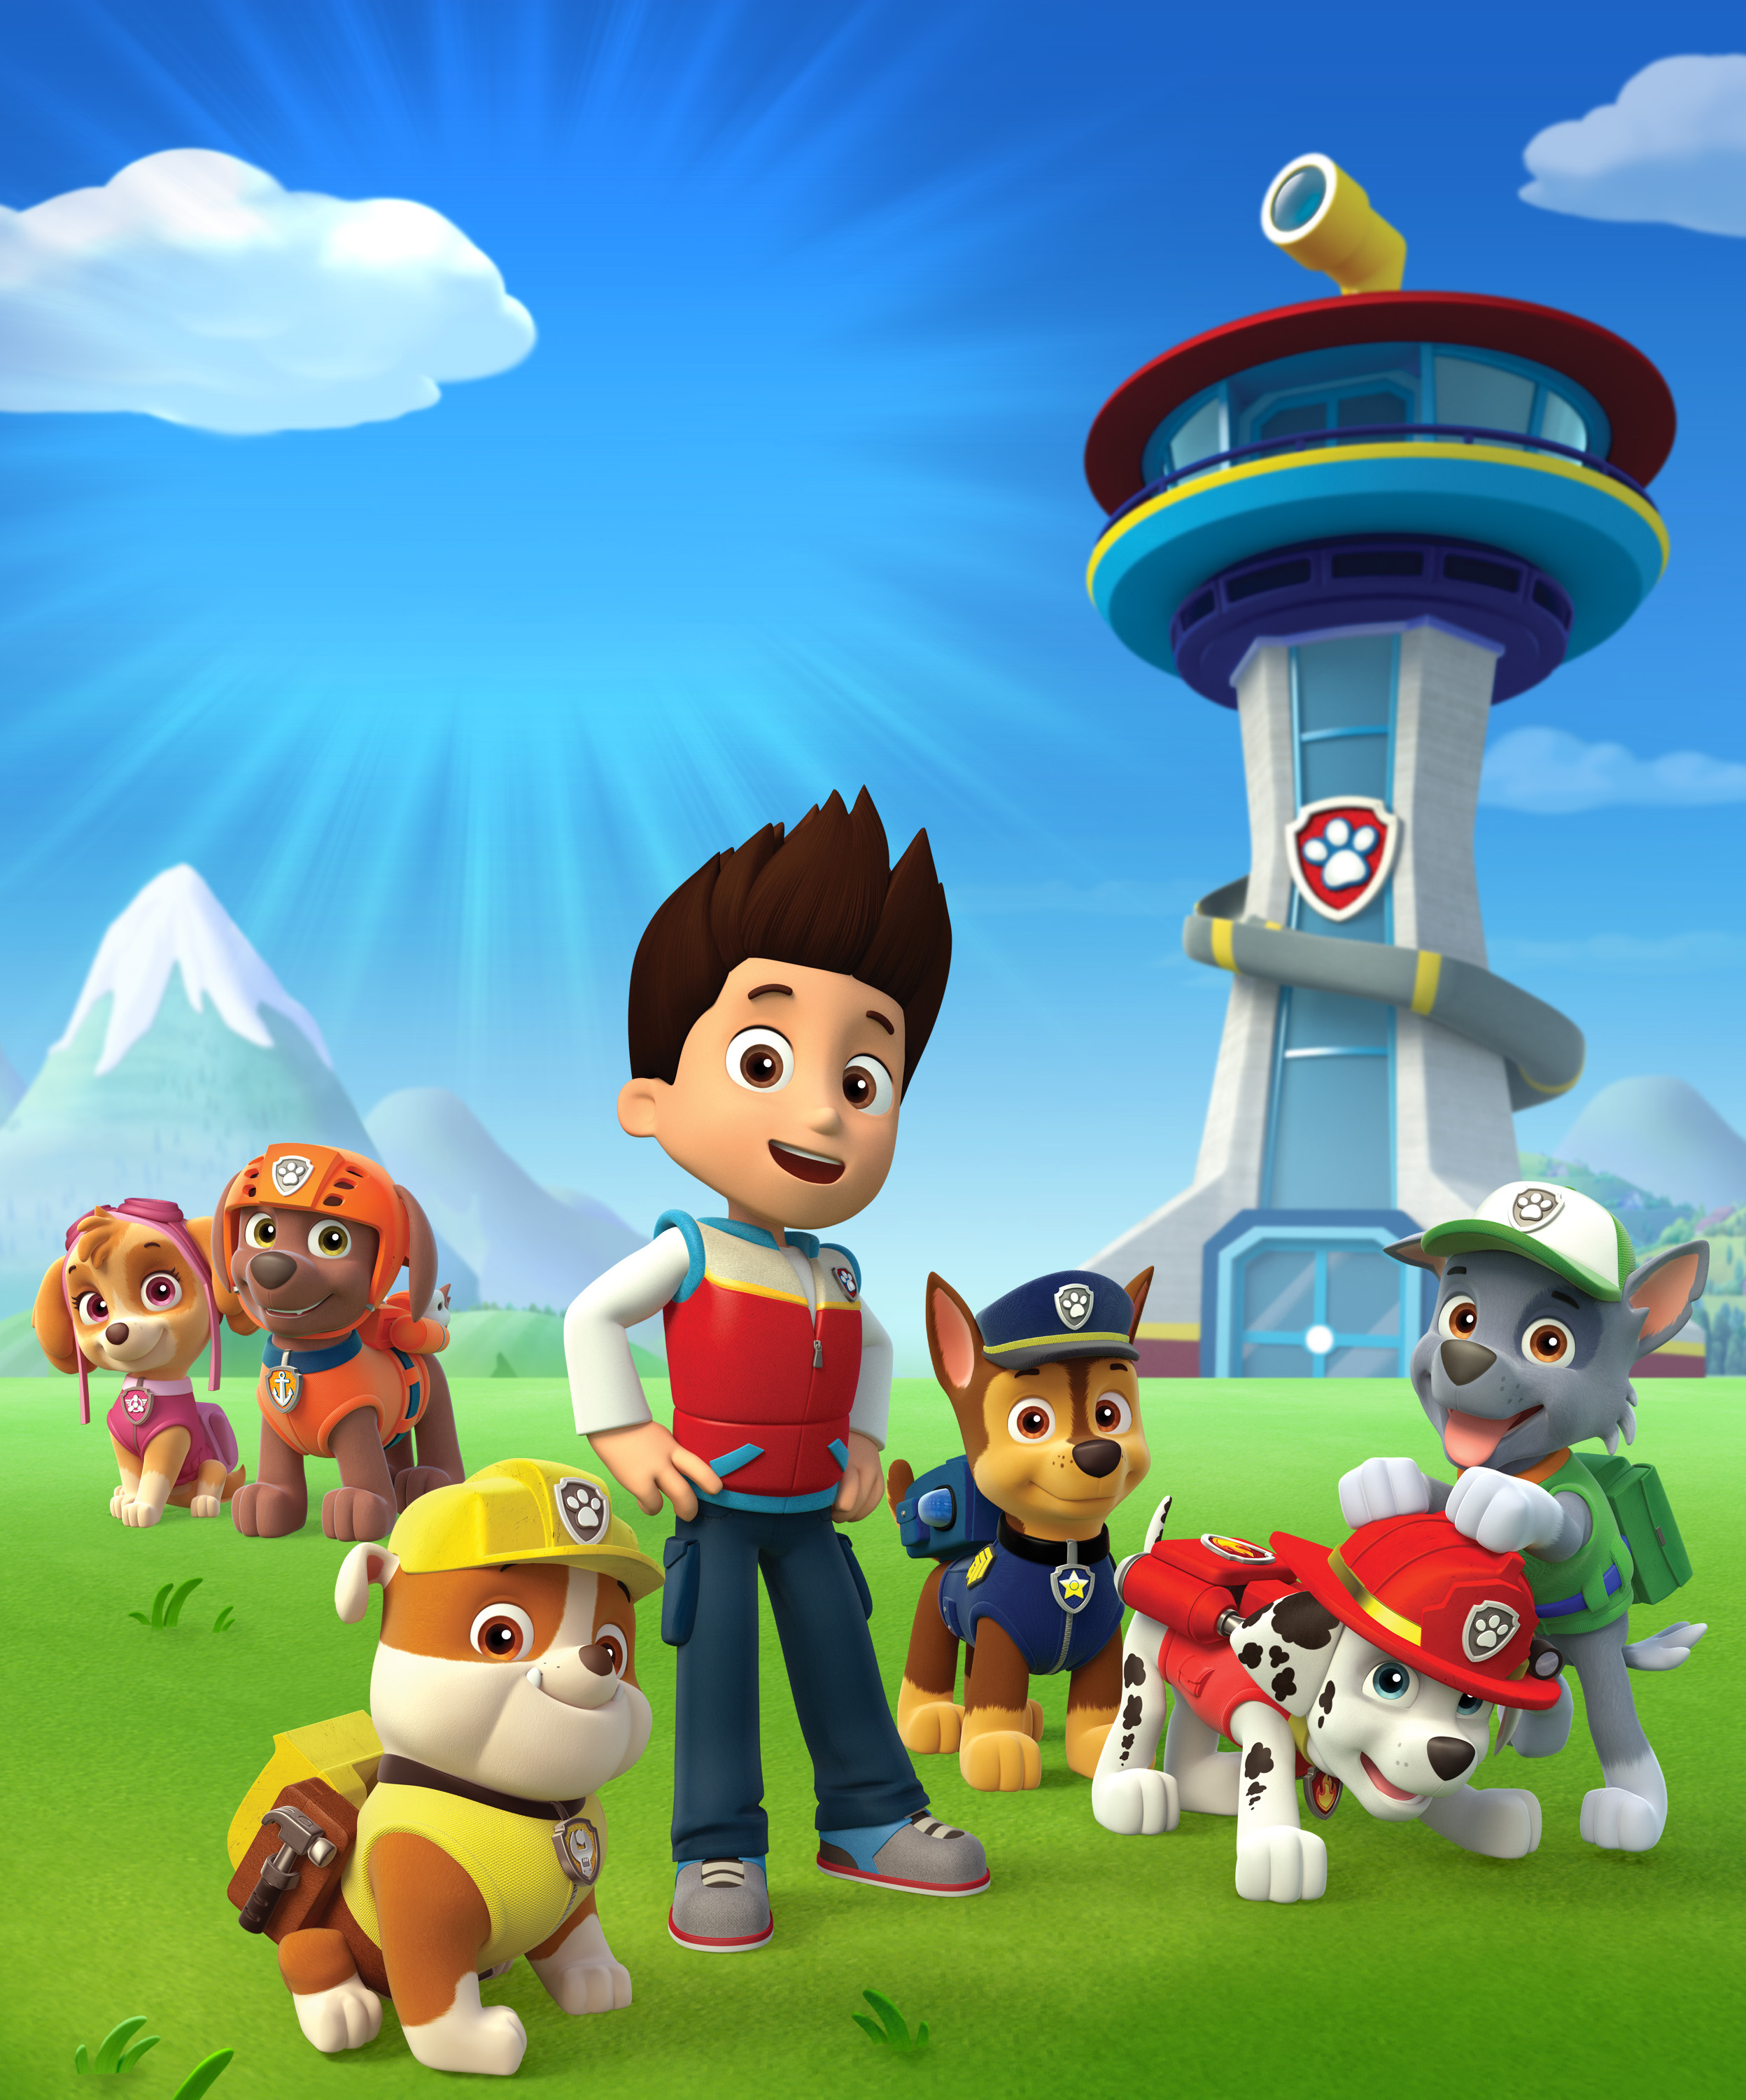 PAW Patrol Images PAW Patrol HD Wallpaper And Background Photos 36980593